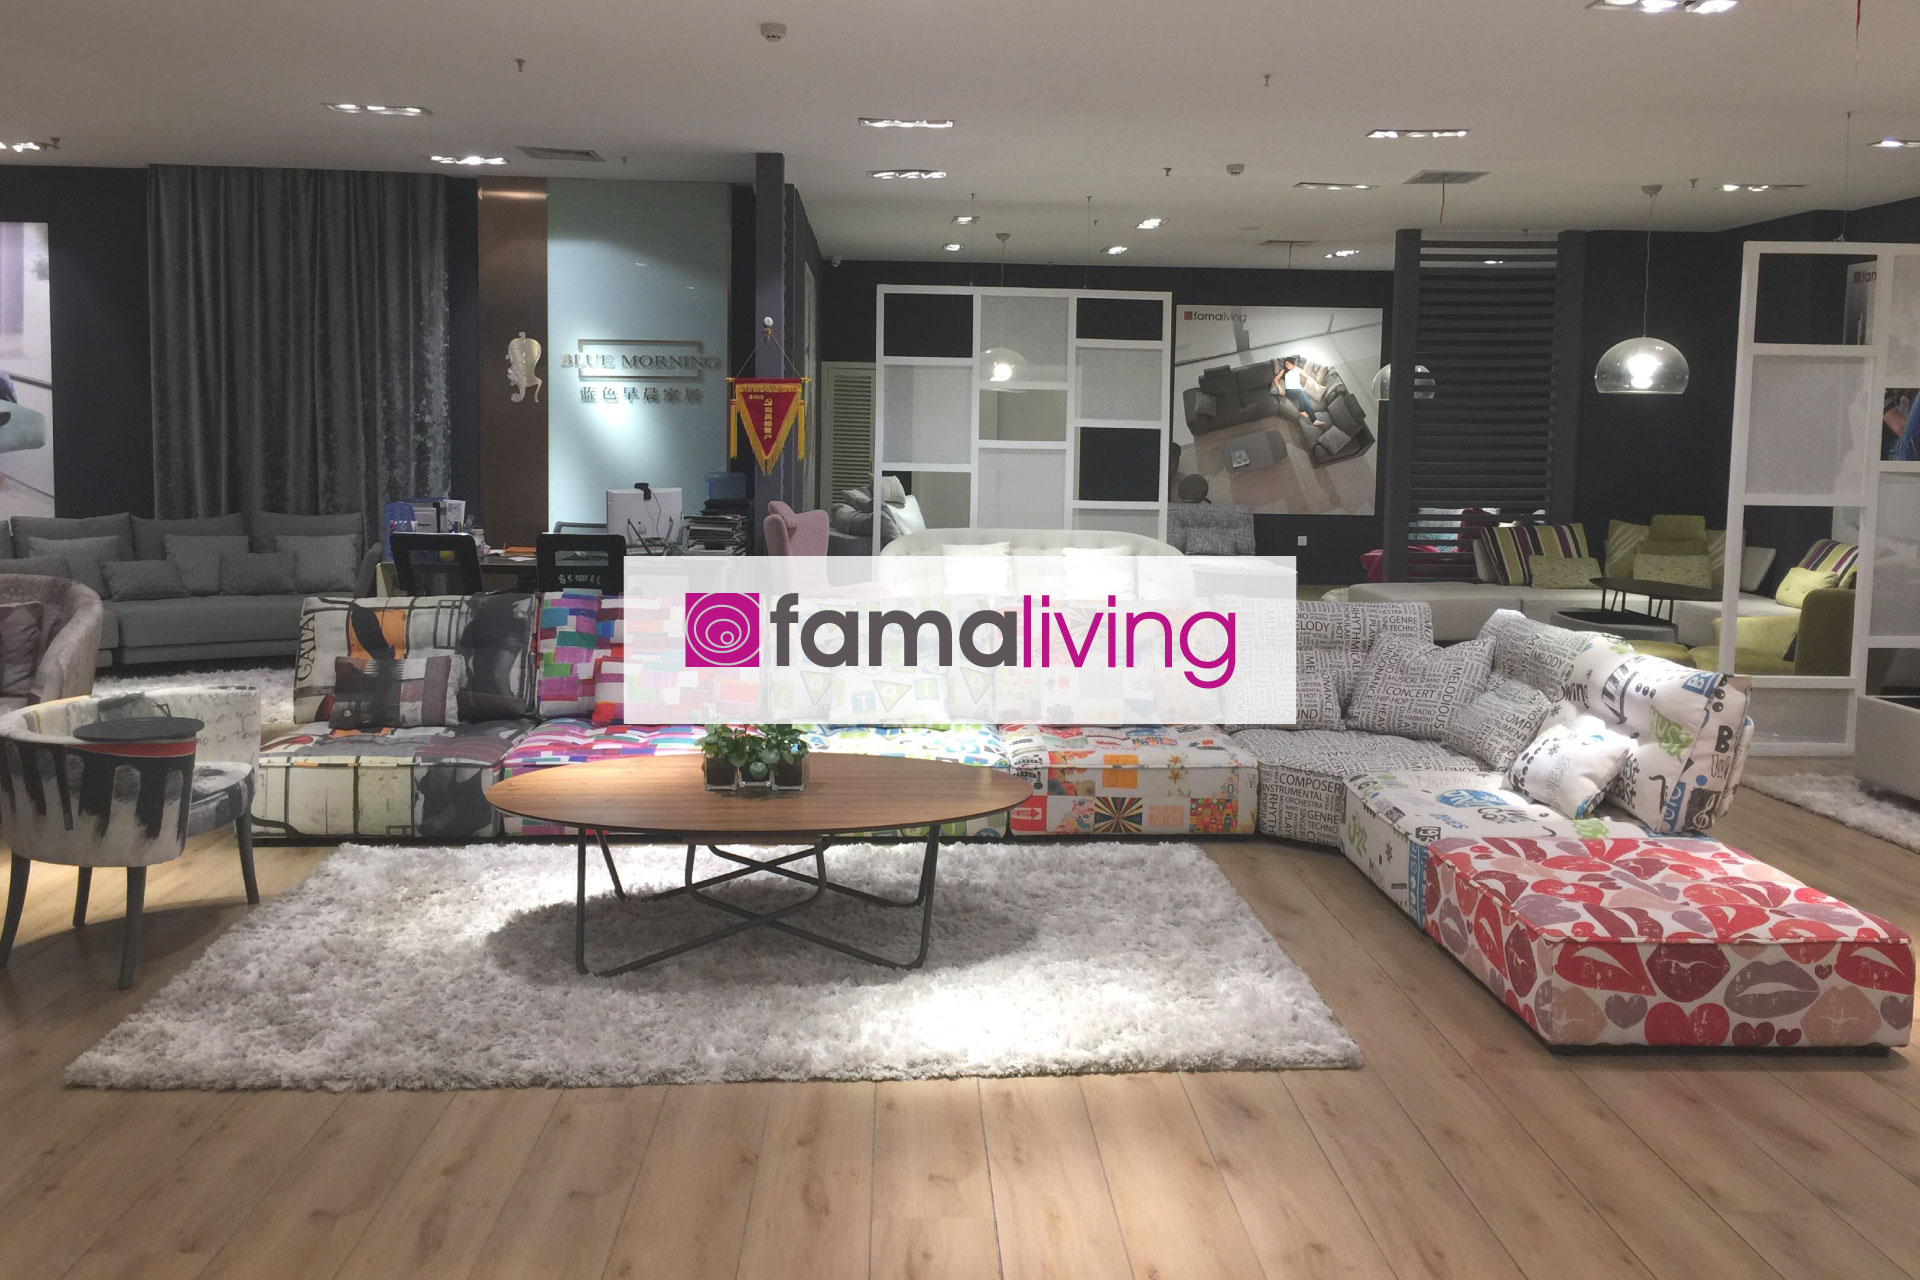 https://www.famaliving.com/hohhot-en